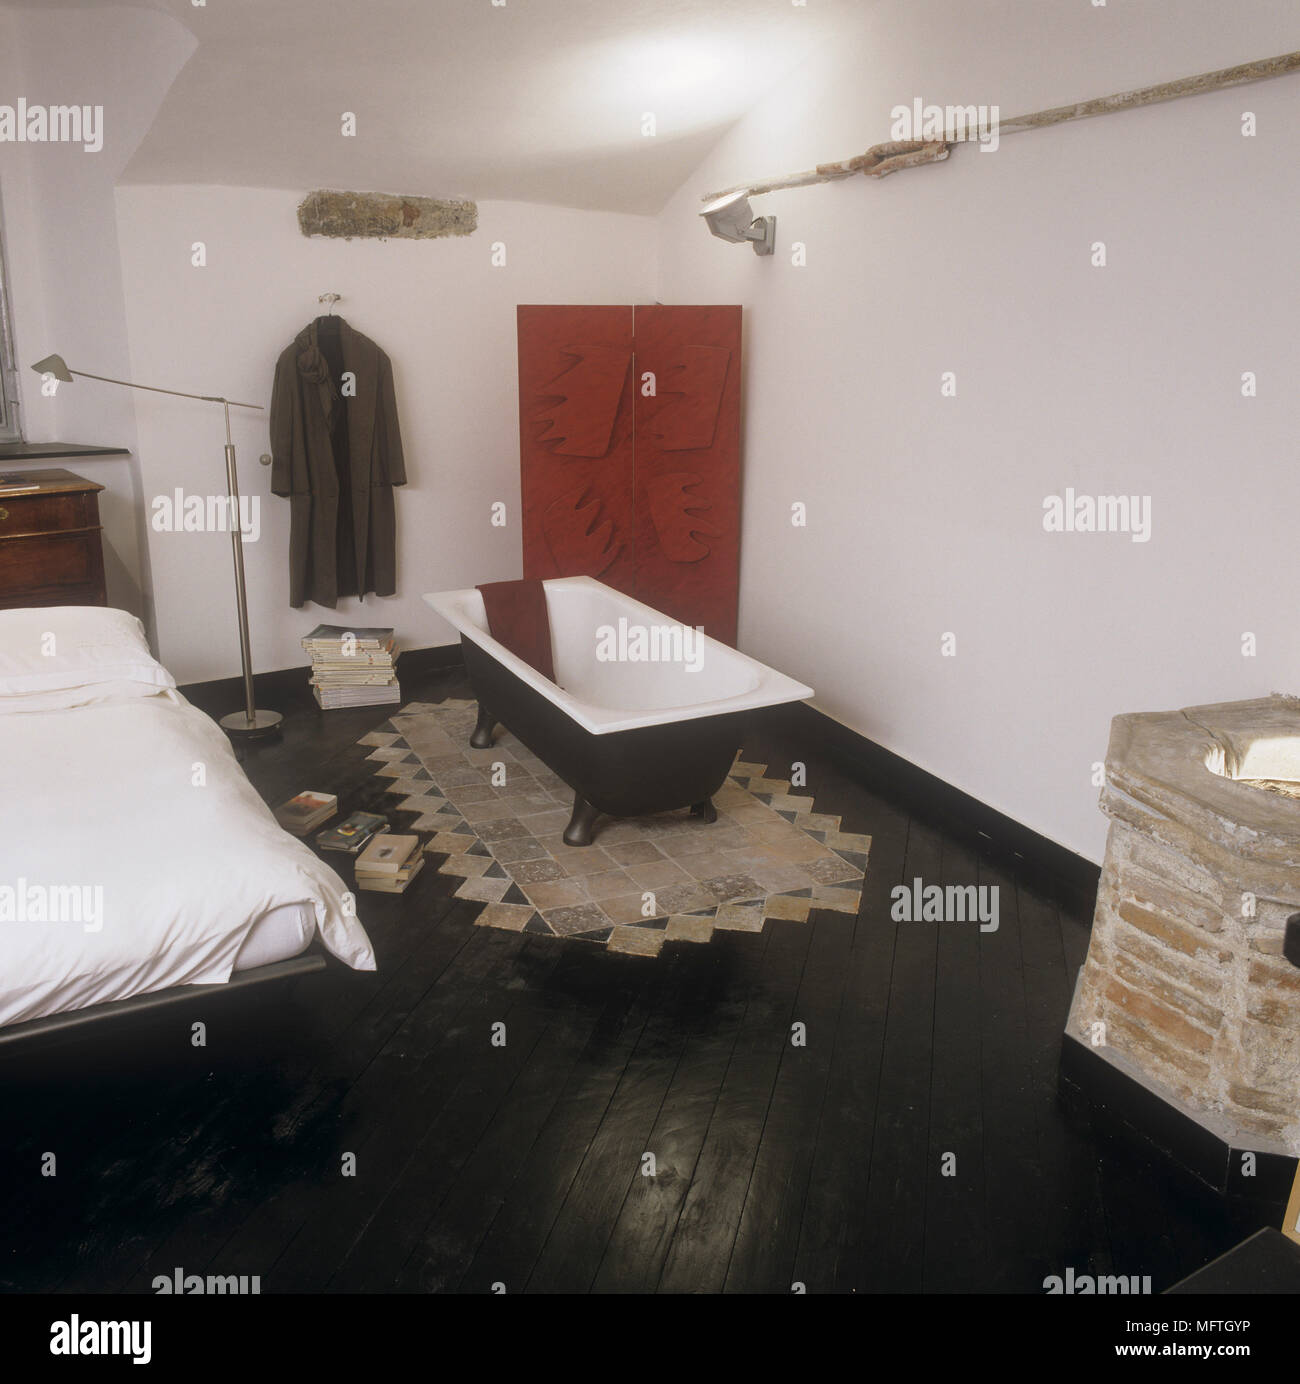 Bedroom with double bed and freestanding bathtub Stock Photo ...